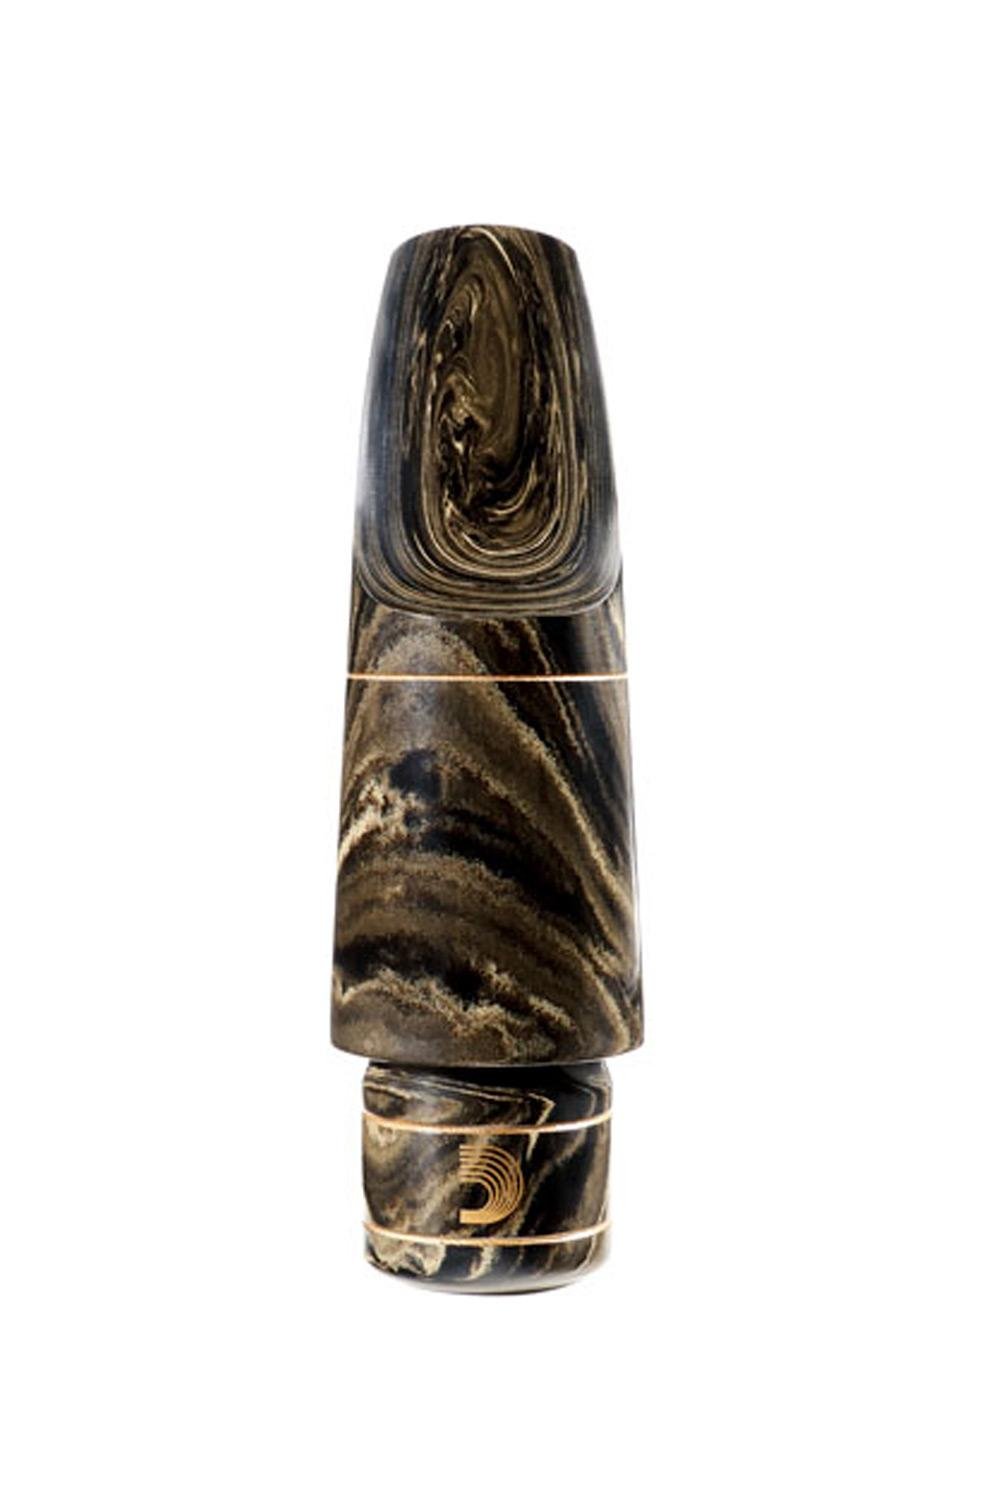 D'addario Jazz Select Limited Edition Marbled Tenor Sax Mouthpiece